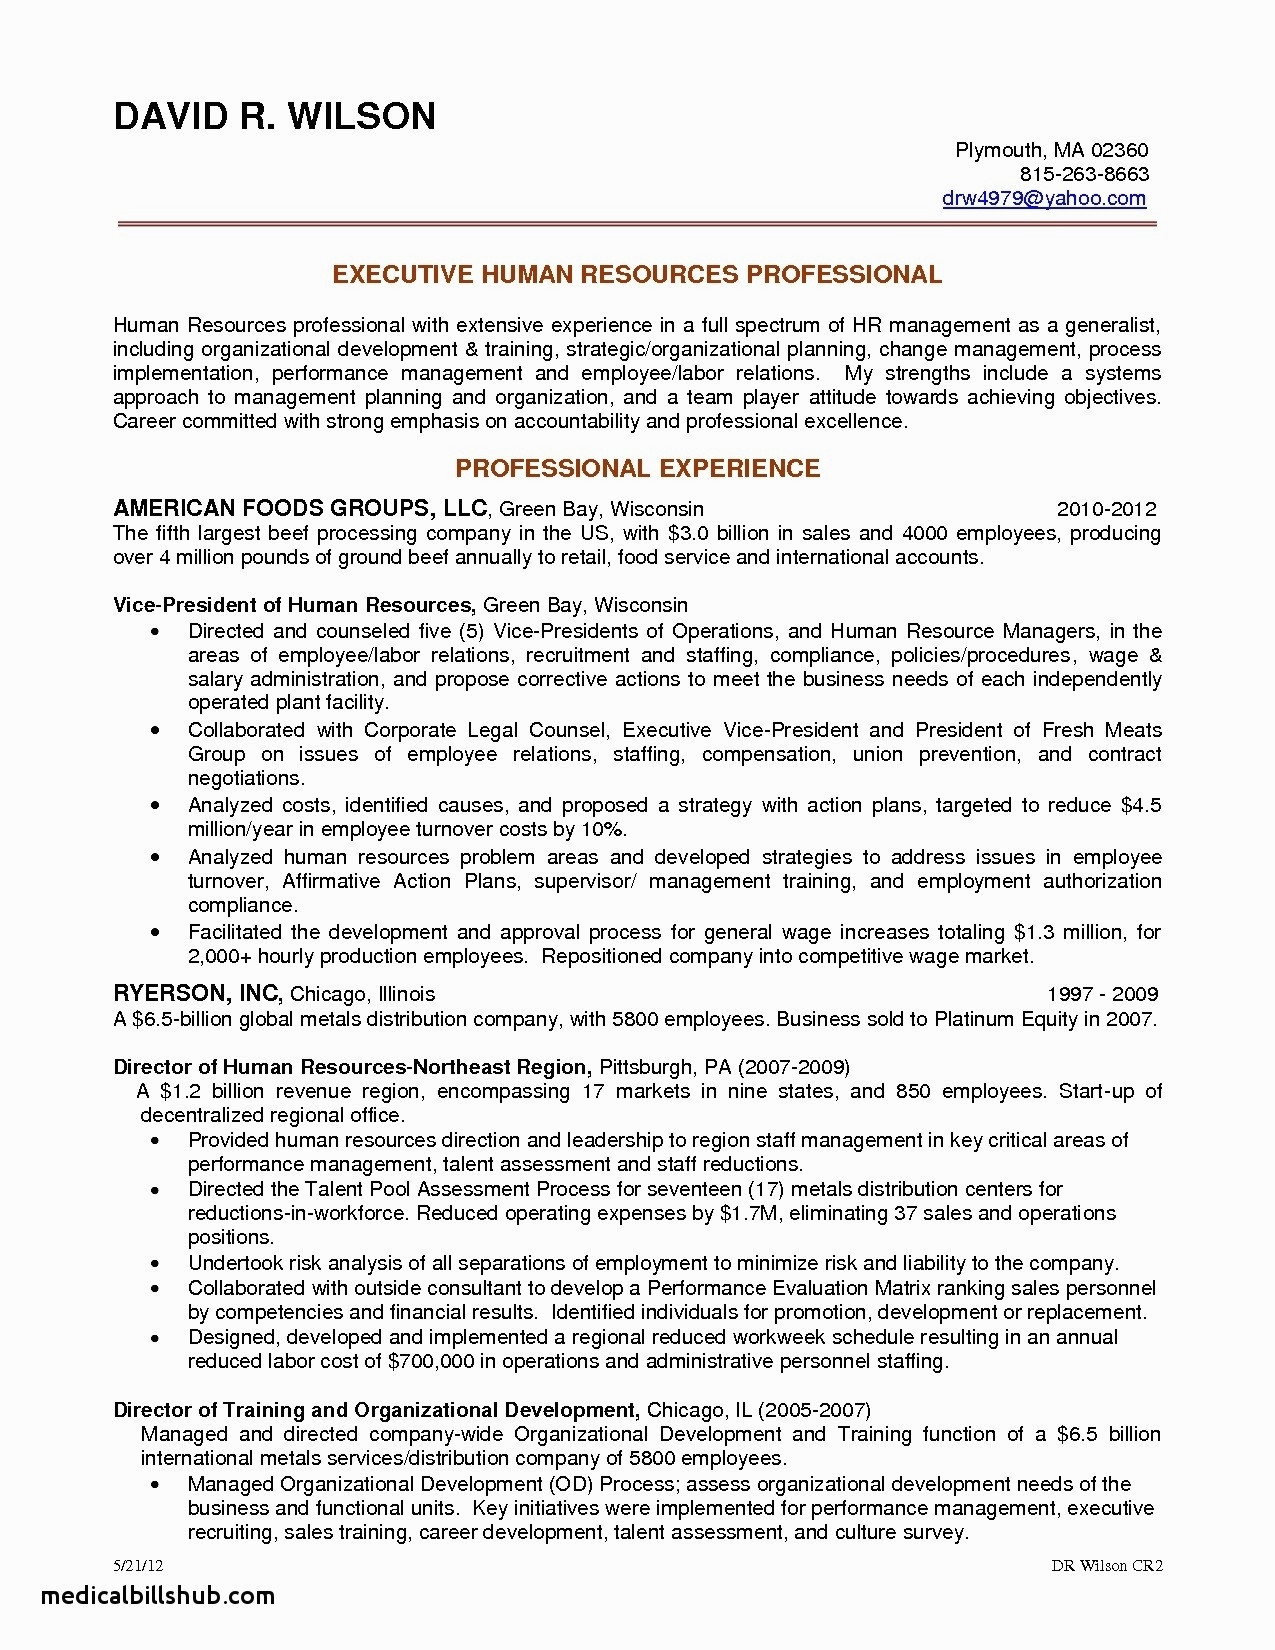 Functional Executive Resume - Executive Resume Luxury top Resume Summary Examples It Project